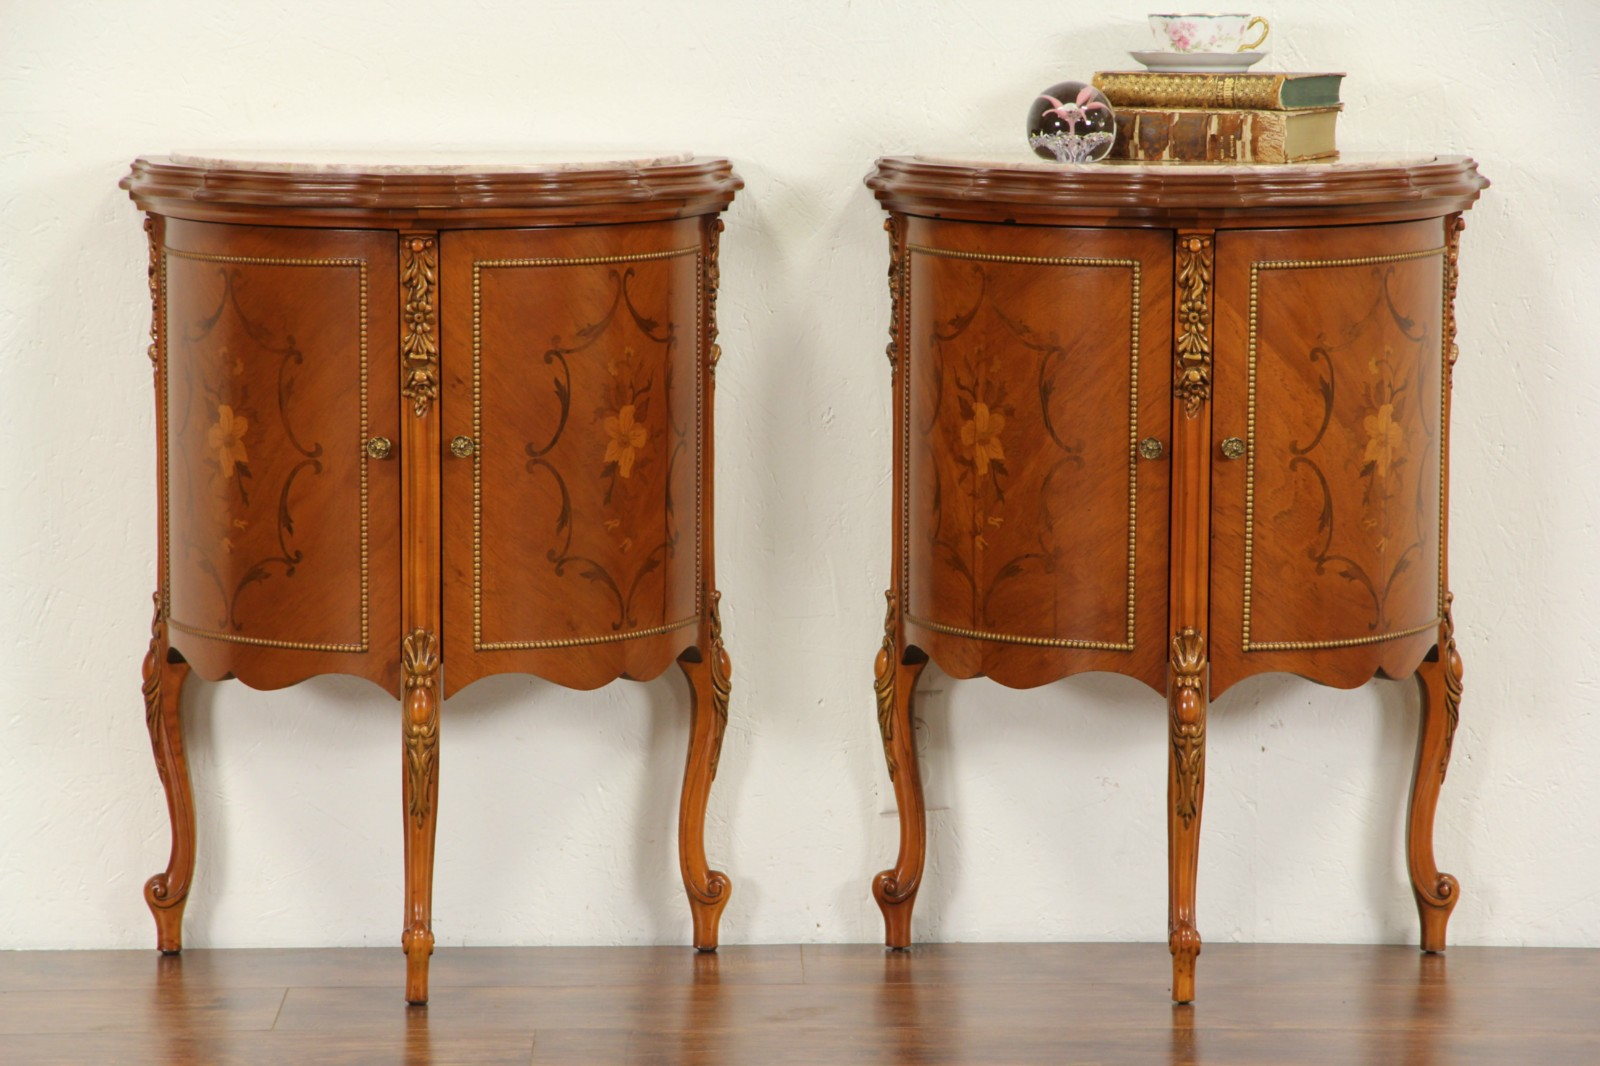 SOLD   Pair Of Demilune Half Round 1940 Vintage Marble Top End Tables Or  Nightstands   Harp Gallery